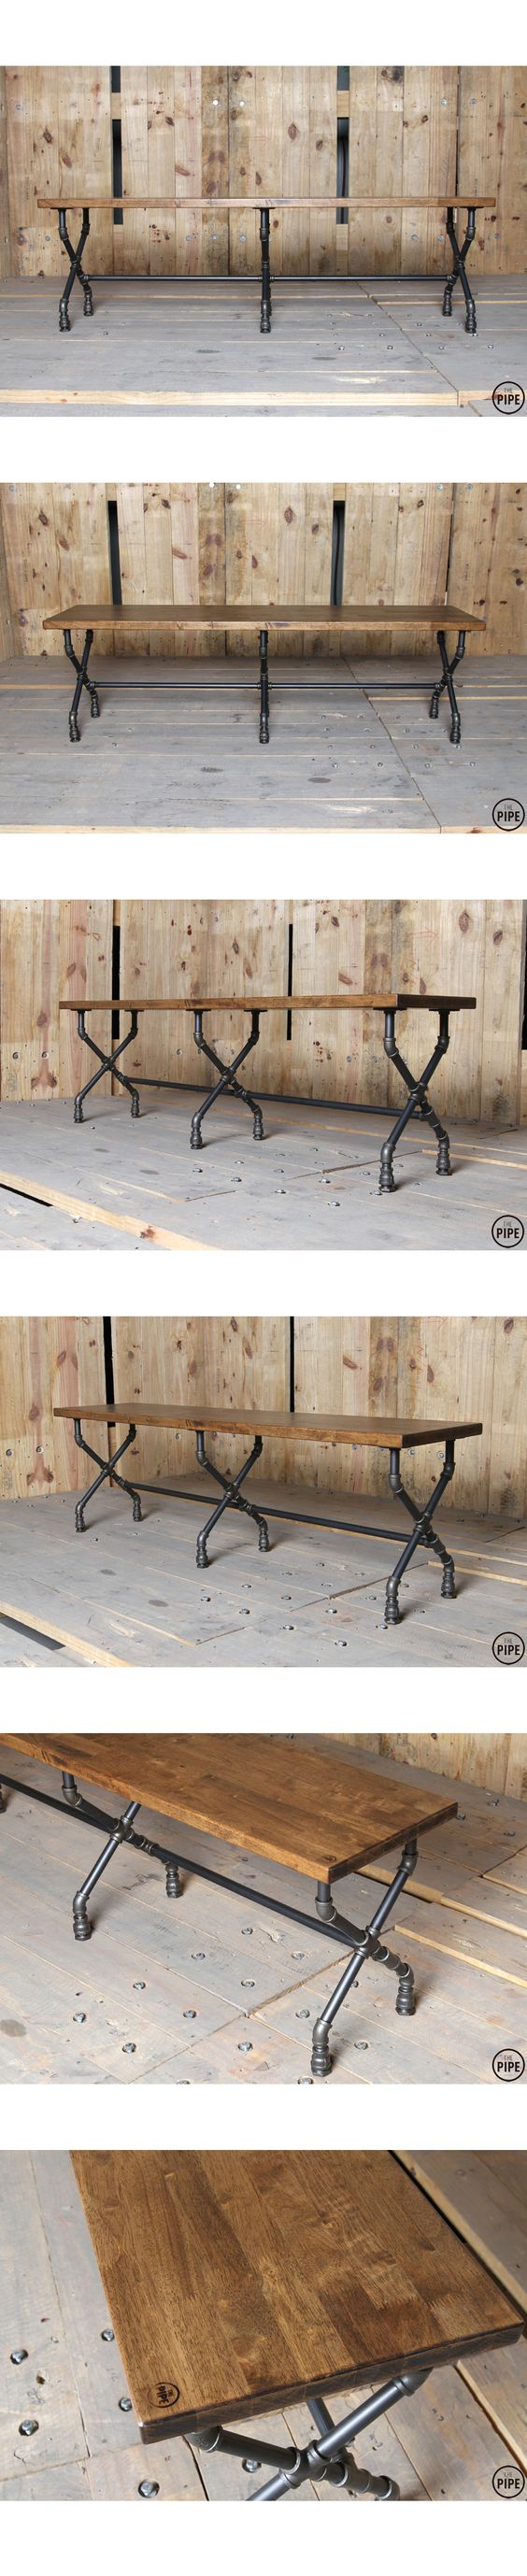 The Pipe:: 15SG Dining Table or Work Table